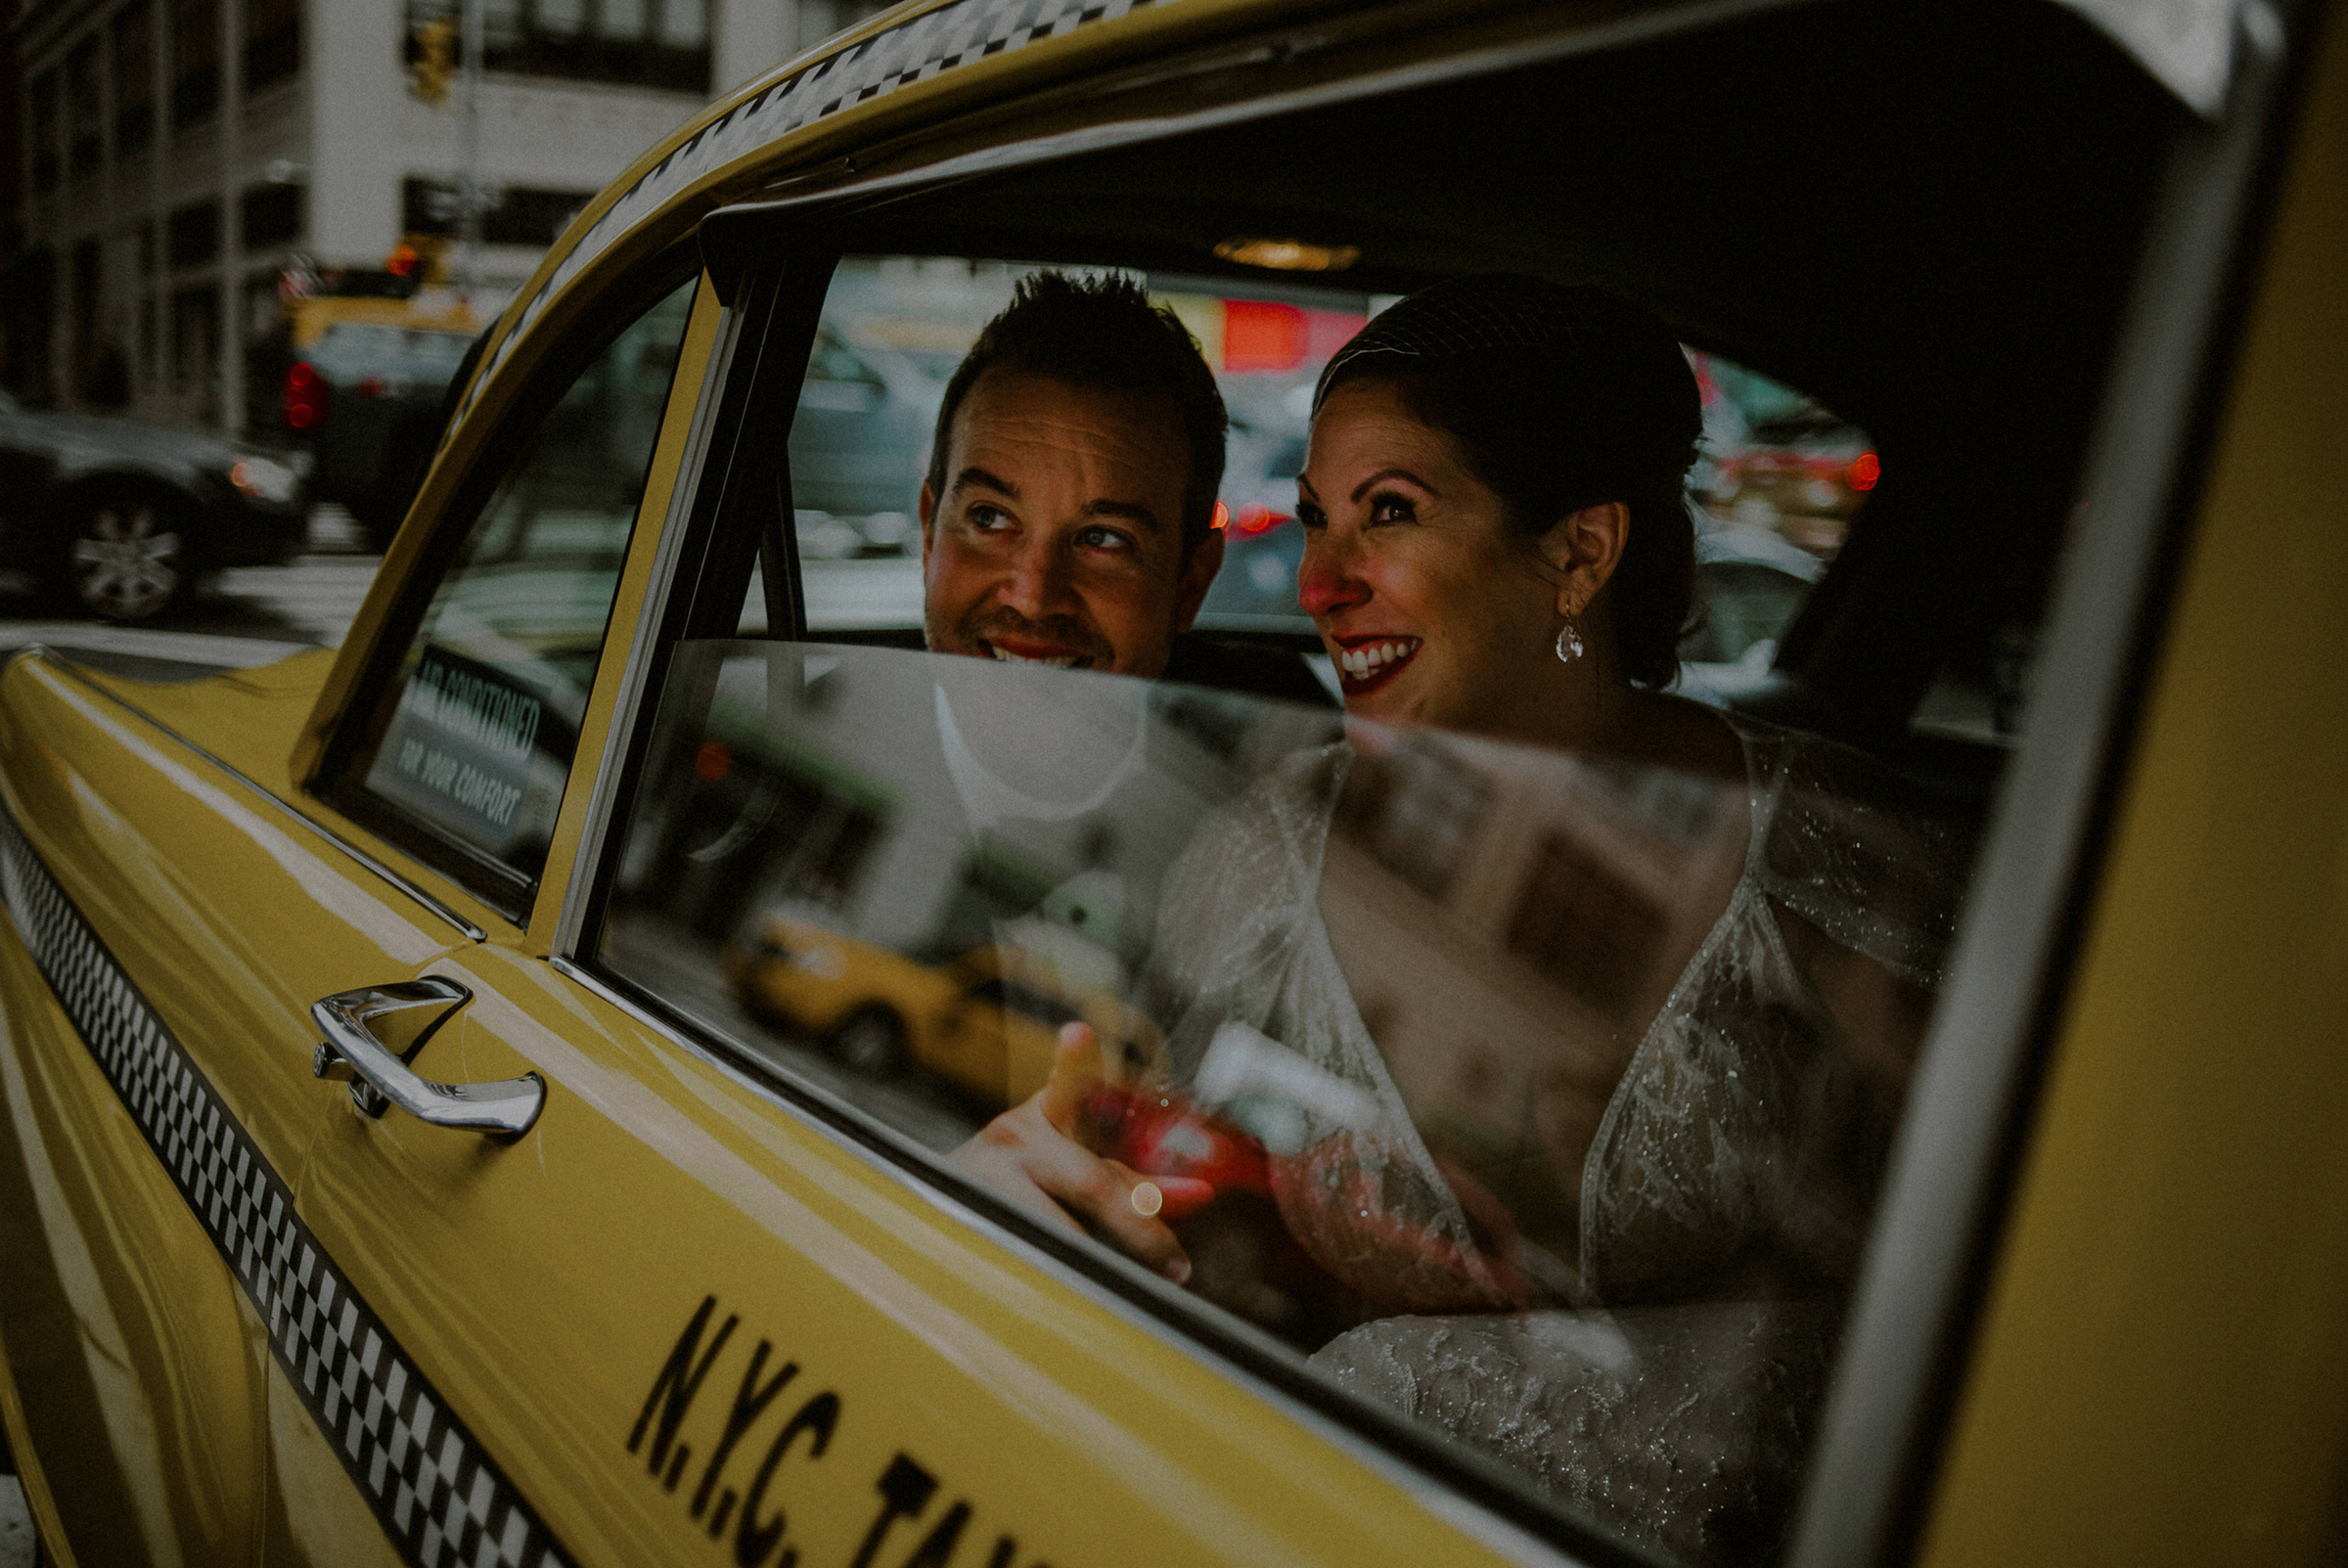 Couple exist in checker cab - photo by Carolina Rivera Photography